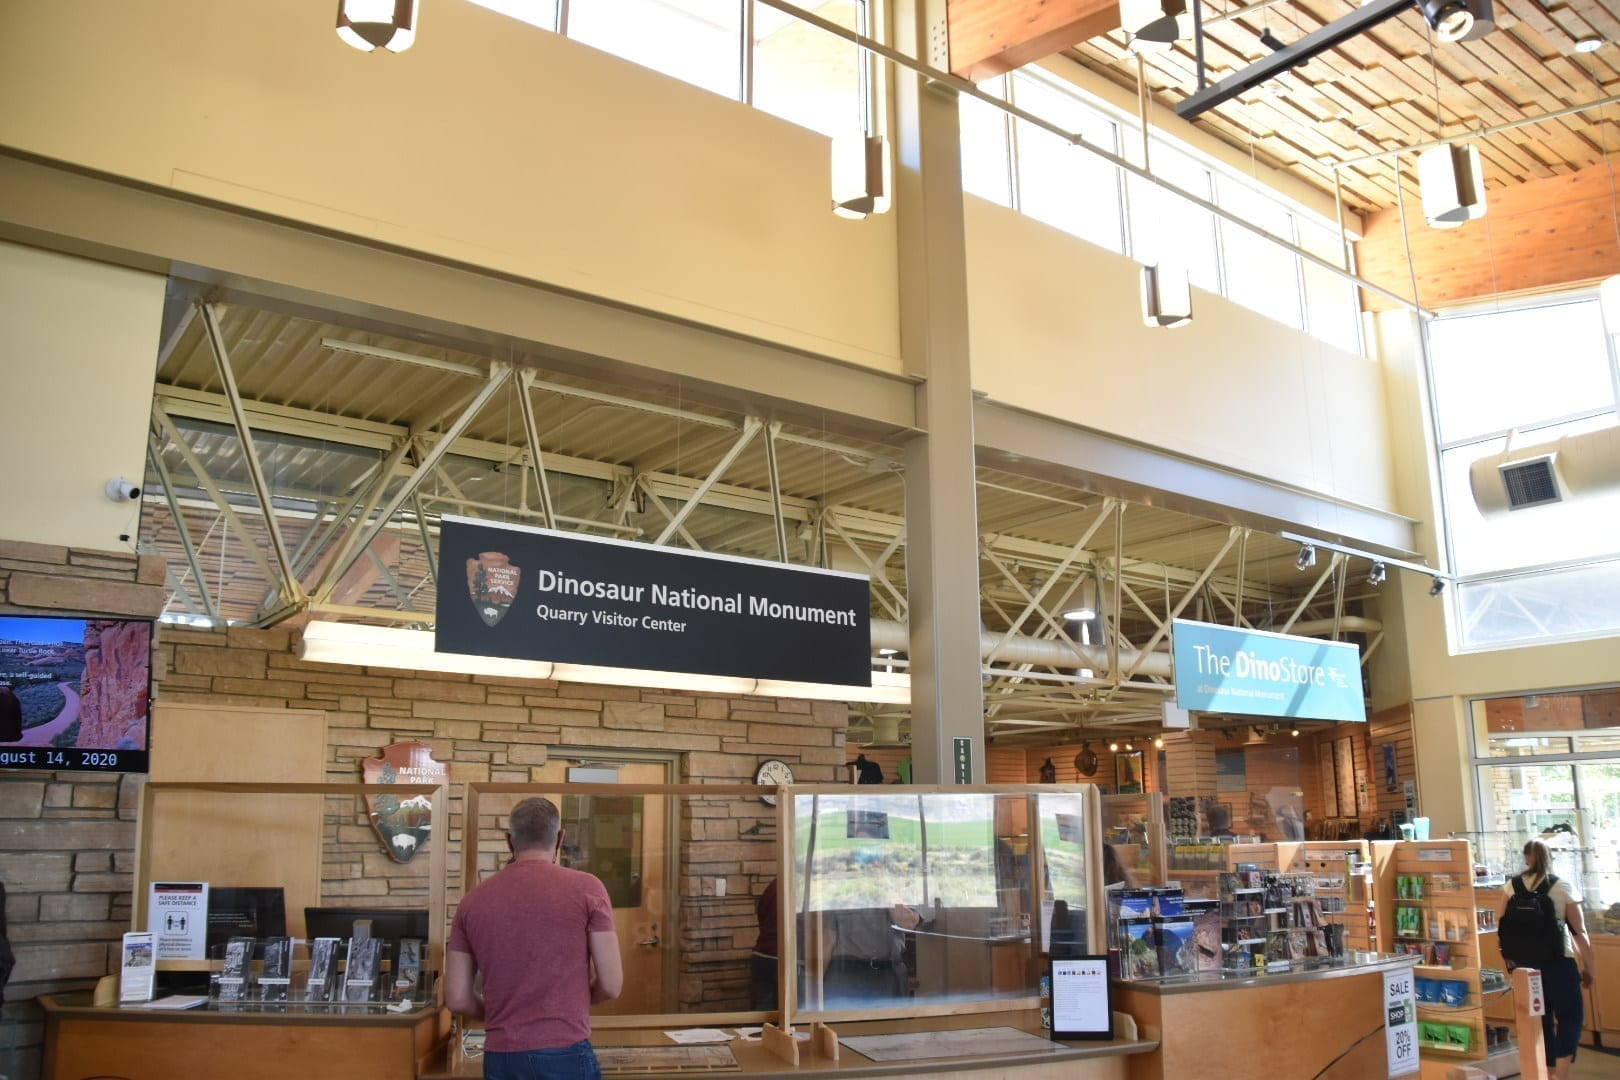 Tickets for Dinosaur National Monument